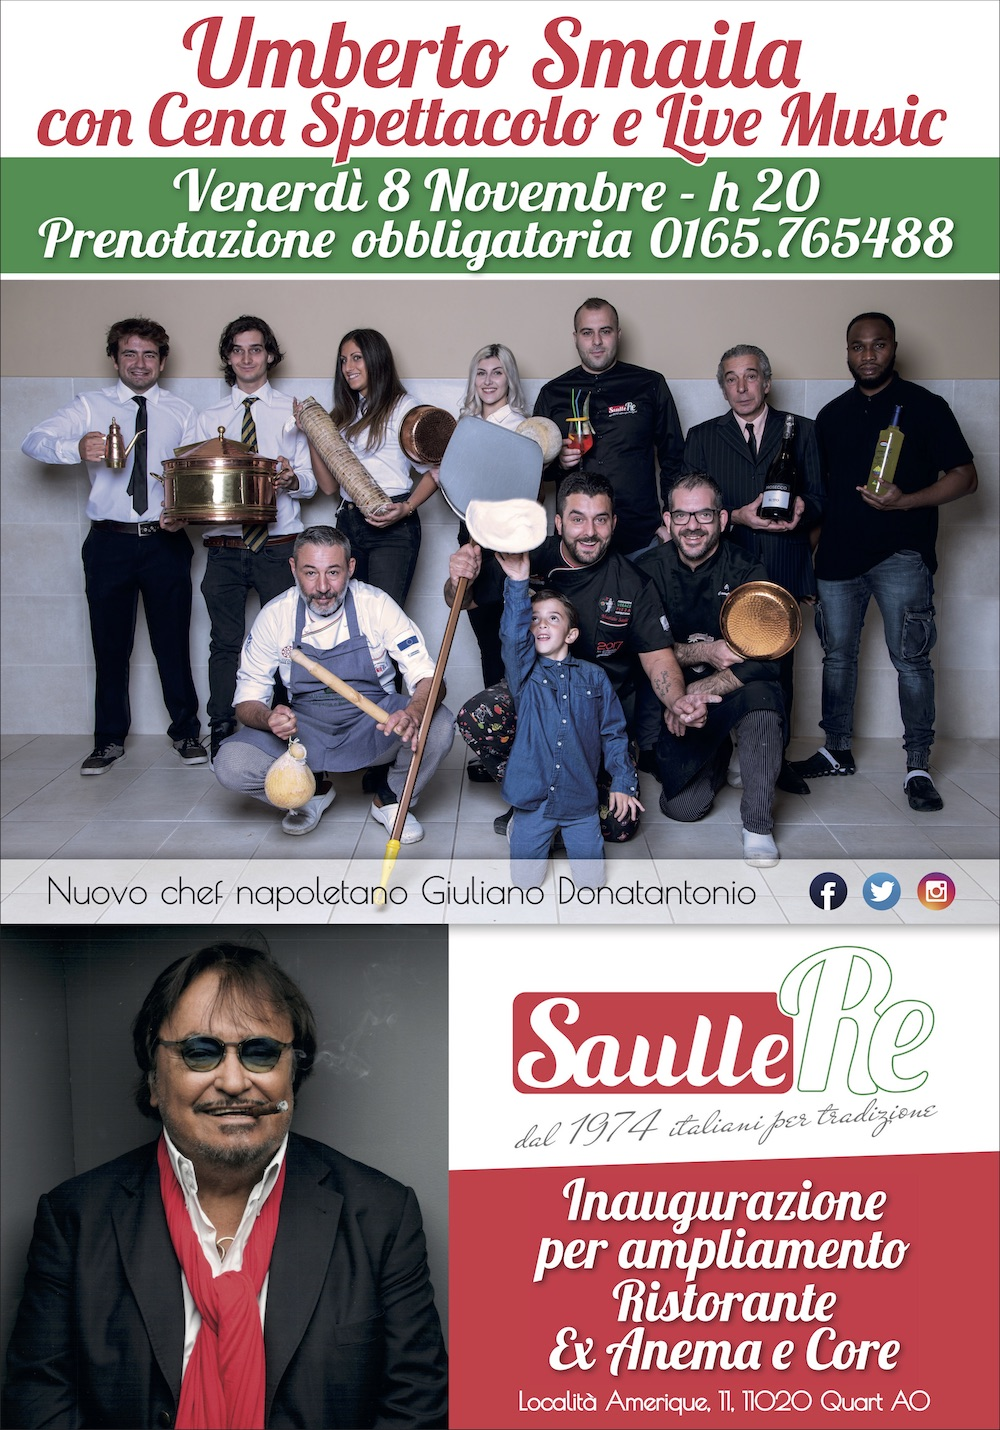 Saulle Re